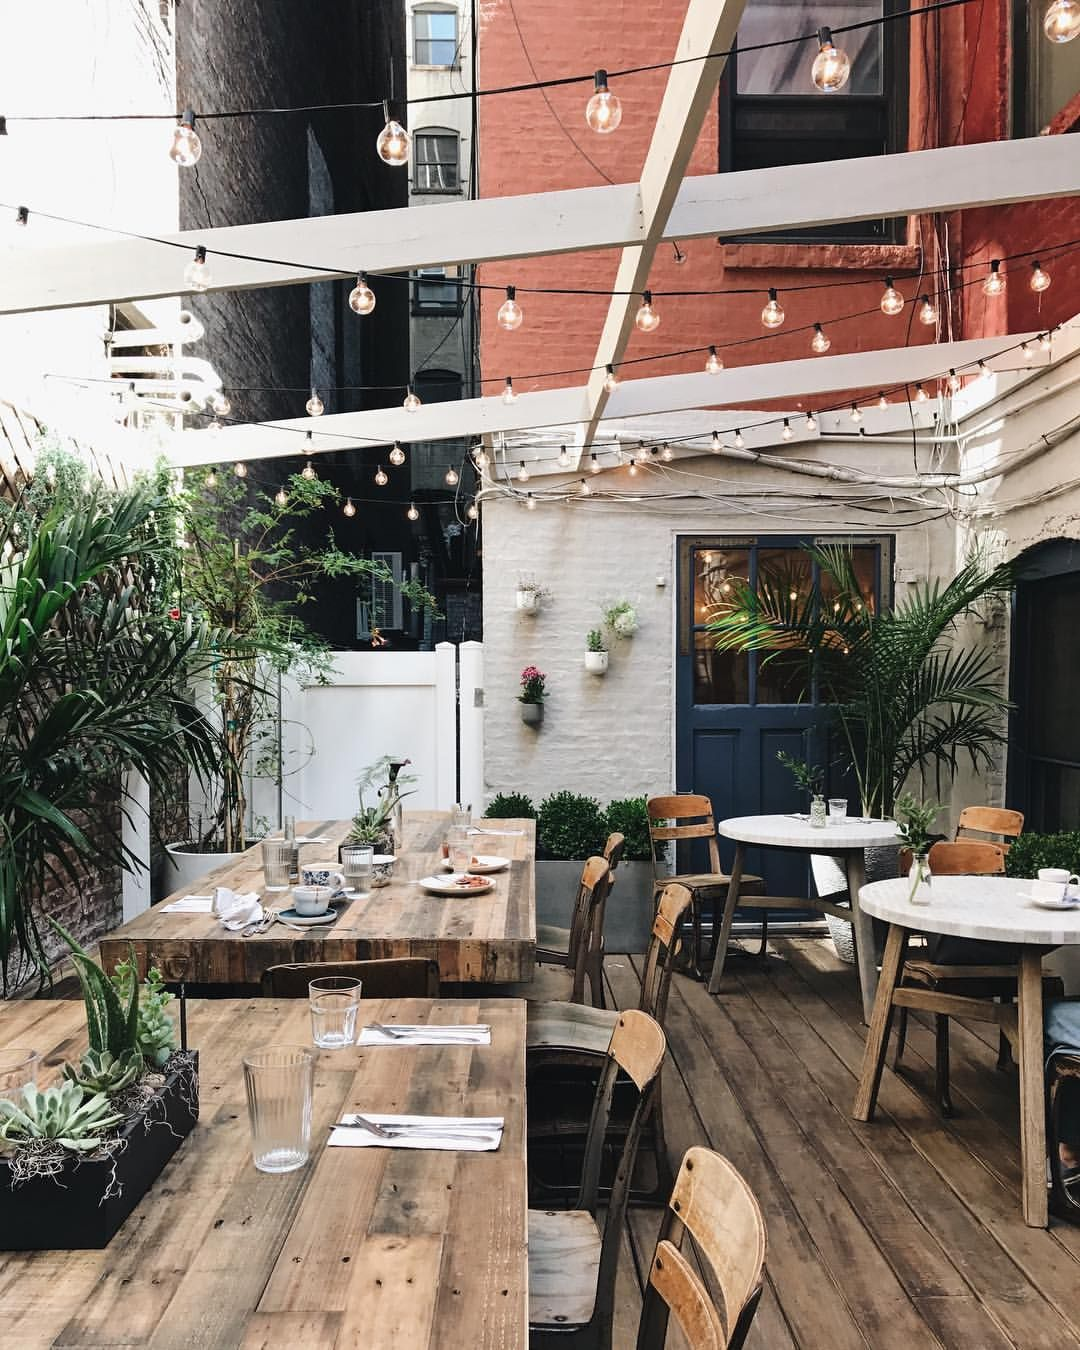 maman nyc home and garden in 2019 nyc new york interior rh pinterest com